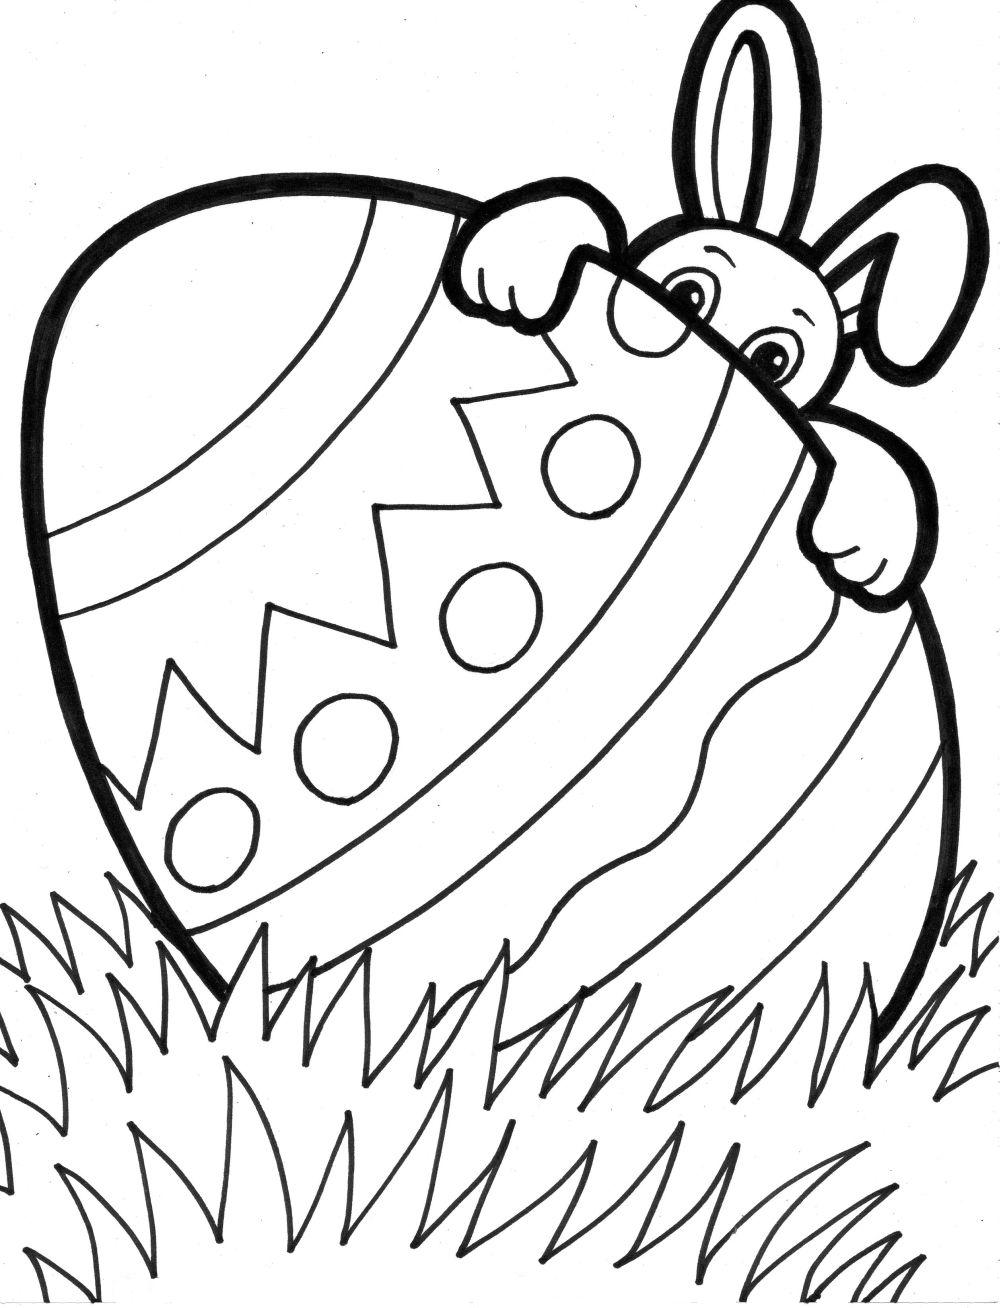 easter printable coloring pages 16 free printable easter coloring pages for kids pages printable coloring easter